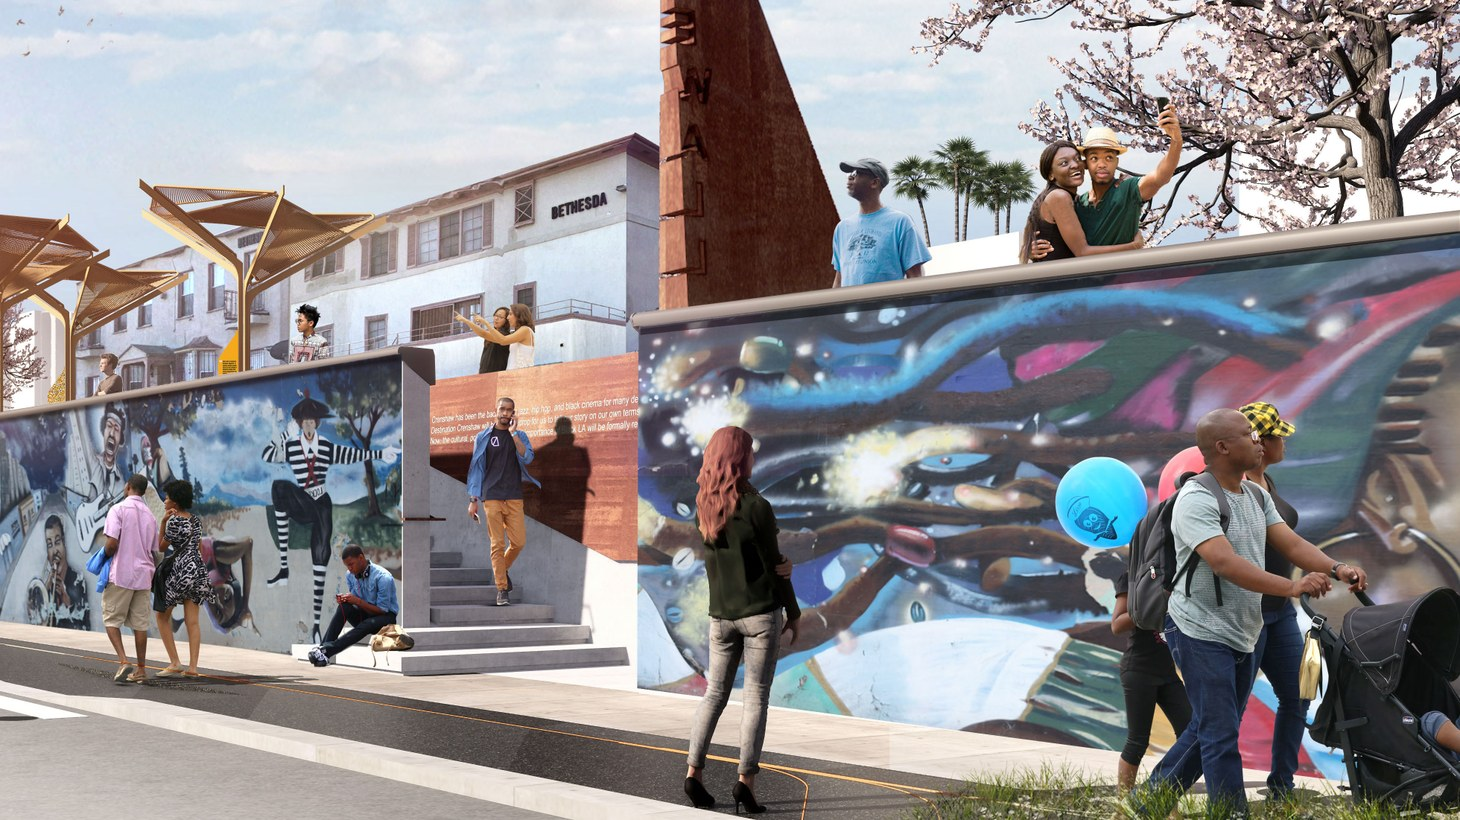 Proposed makeover of the iconic Crenshaw Wall, including art restoration, wall stabilization, and the installation of aparklet, including signage, shade structures, and landscaping.